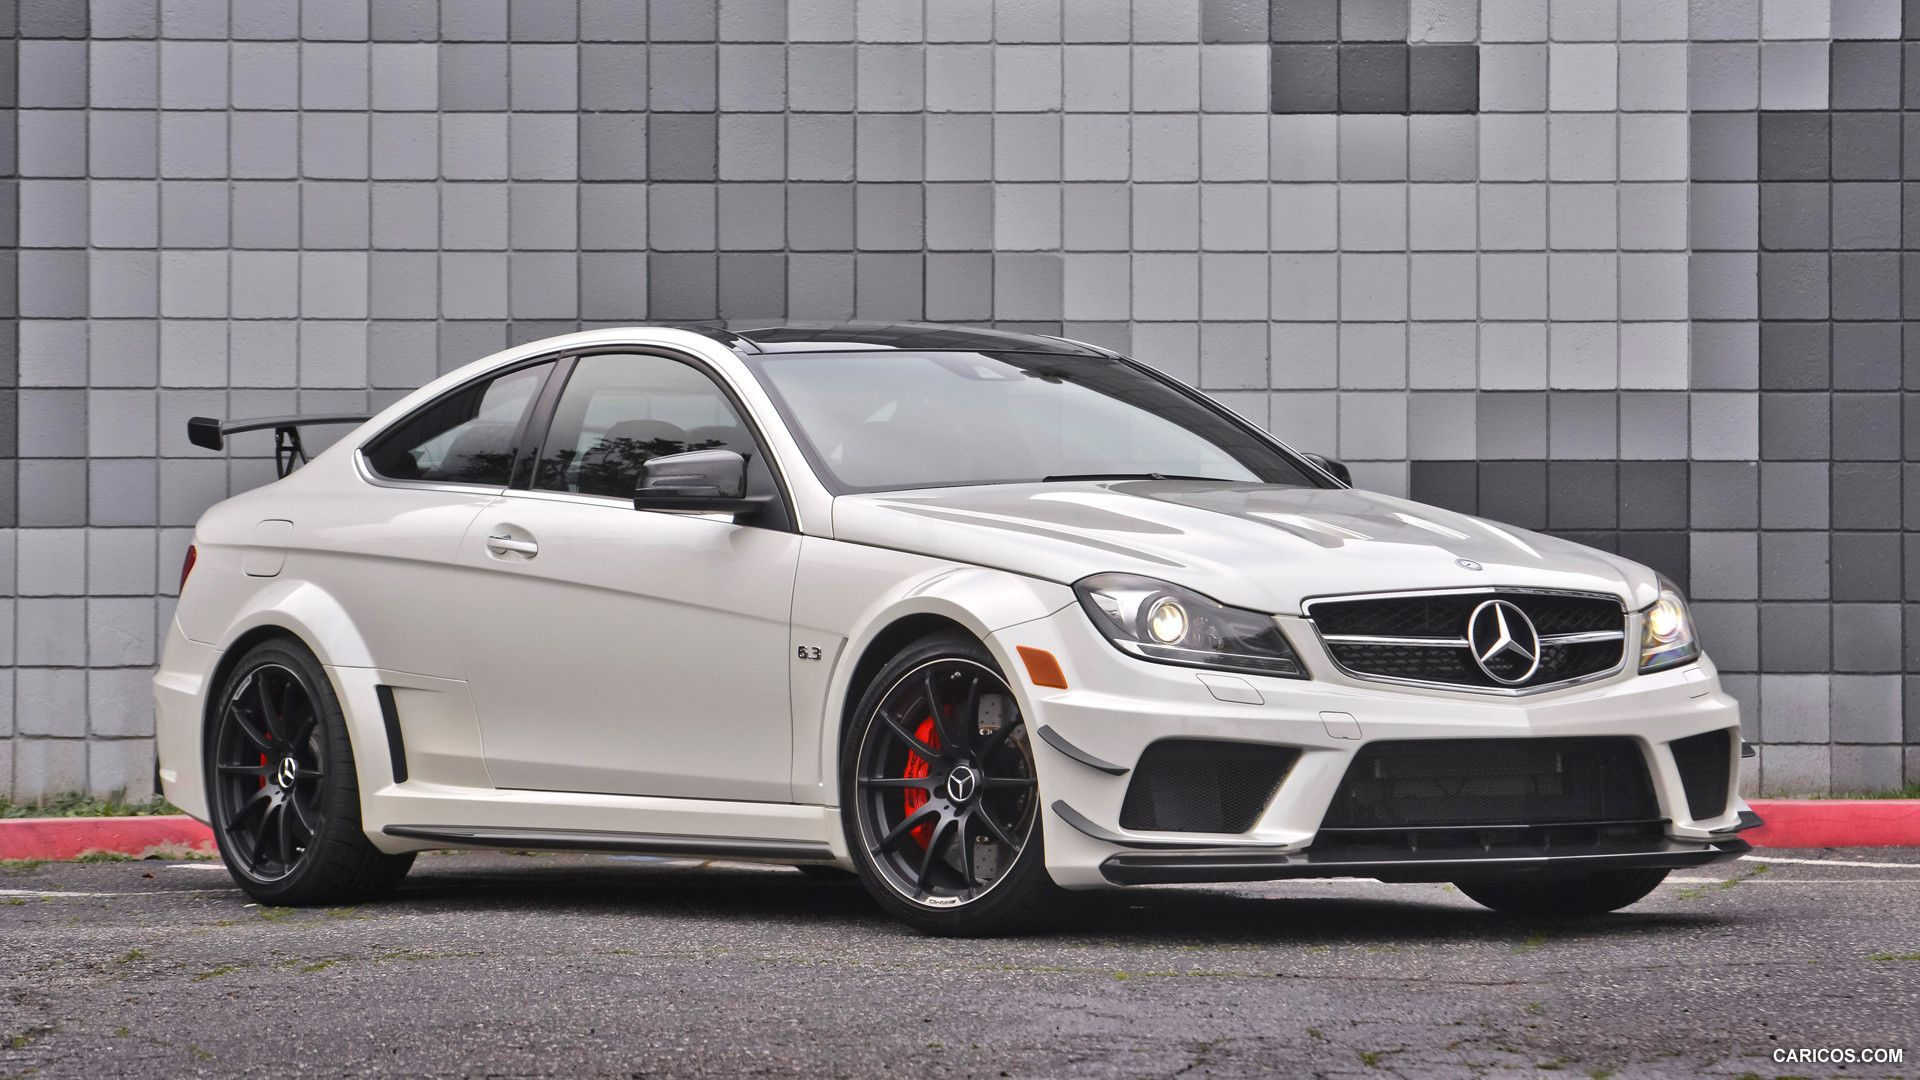 2012 mercedes benz c63 amg coupe black series wallpaper for C63 mercedes benz